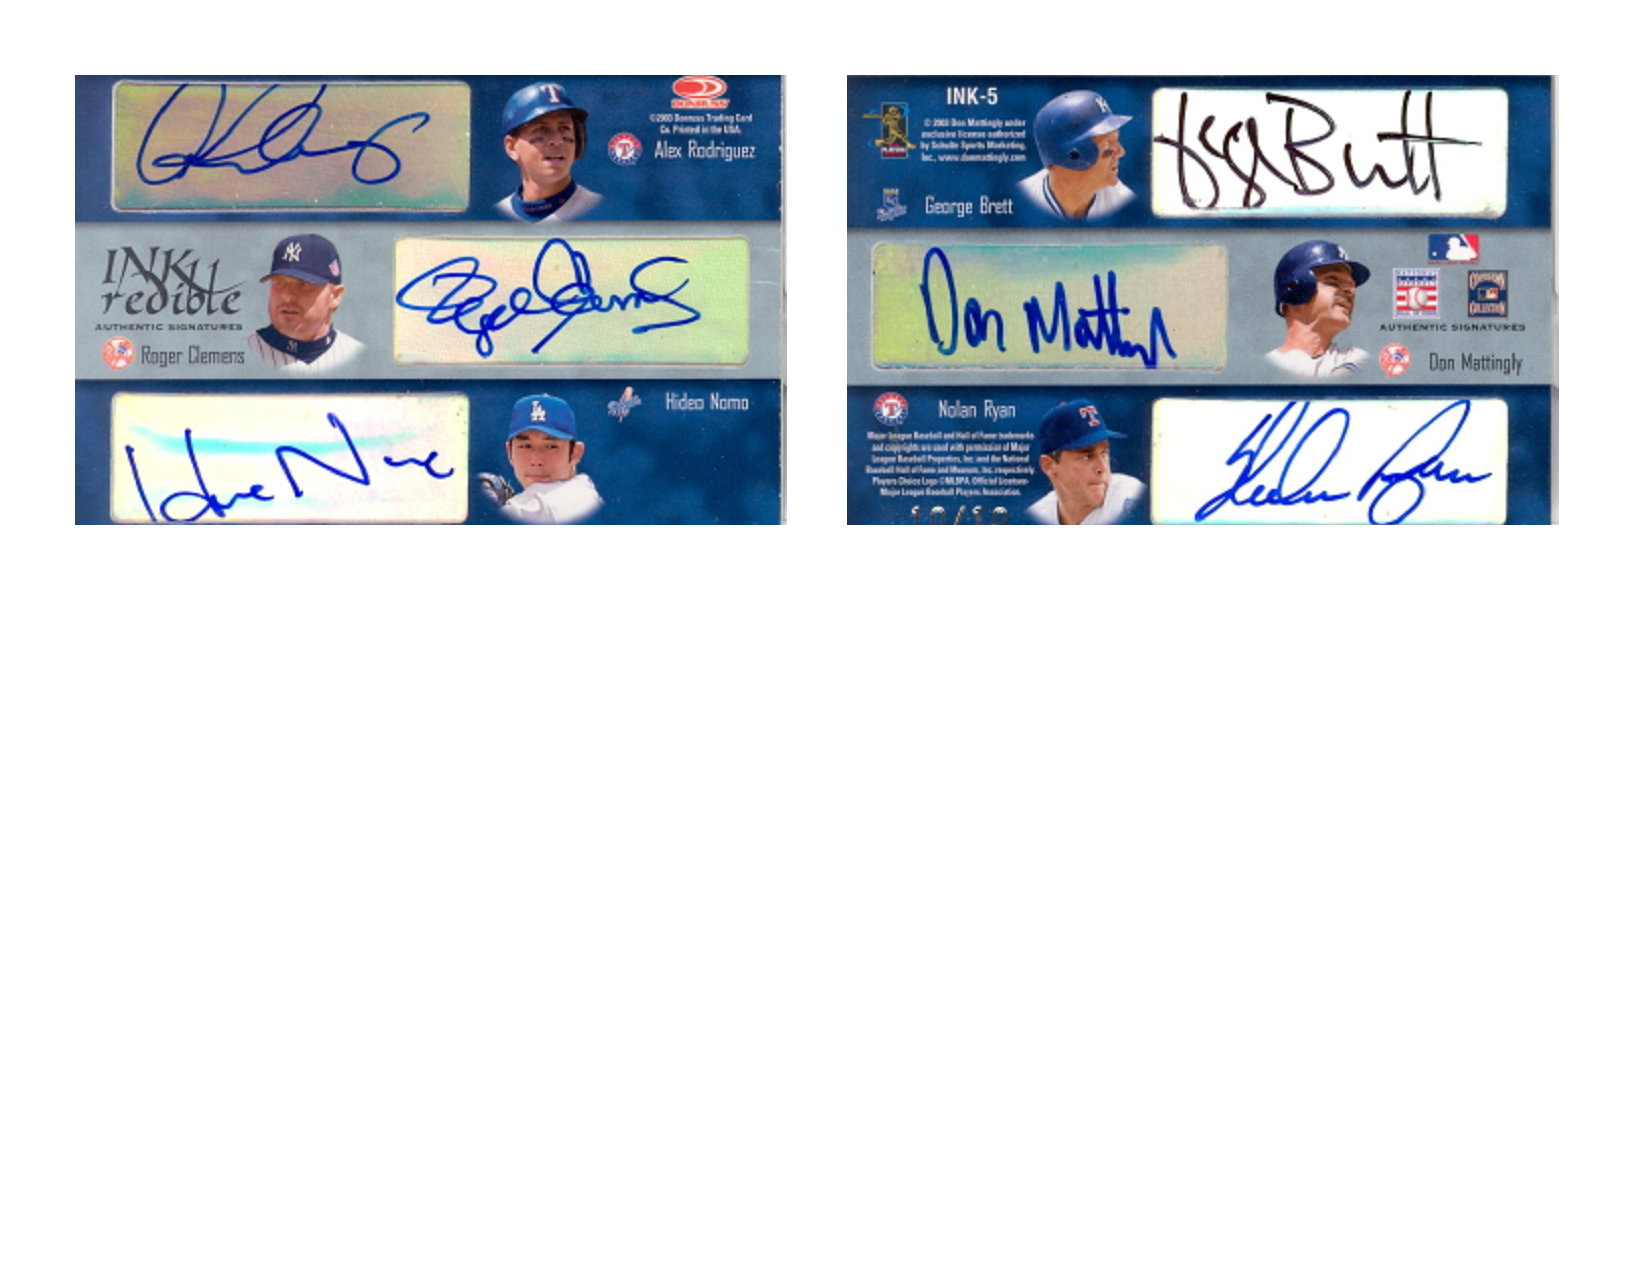 2003 Donruss Signature INKredible Six #5 Alex Rodriguez/Roger Clemens/Hideo Nomo/George Brett/Don Mattingly/Nolan Ryan